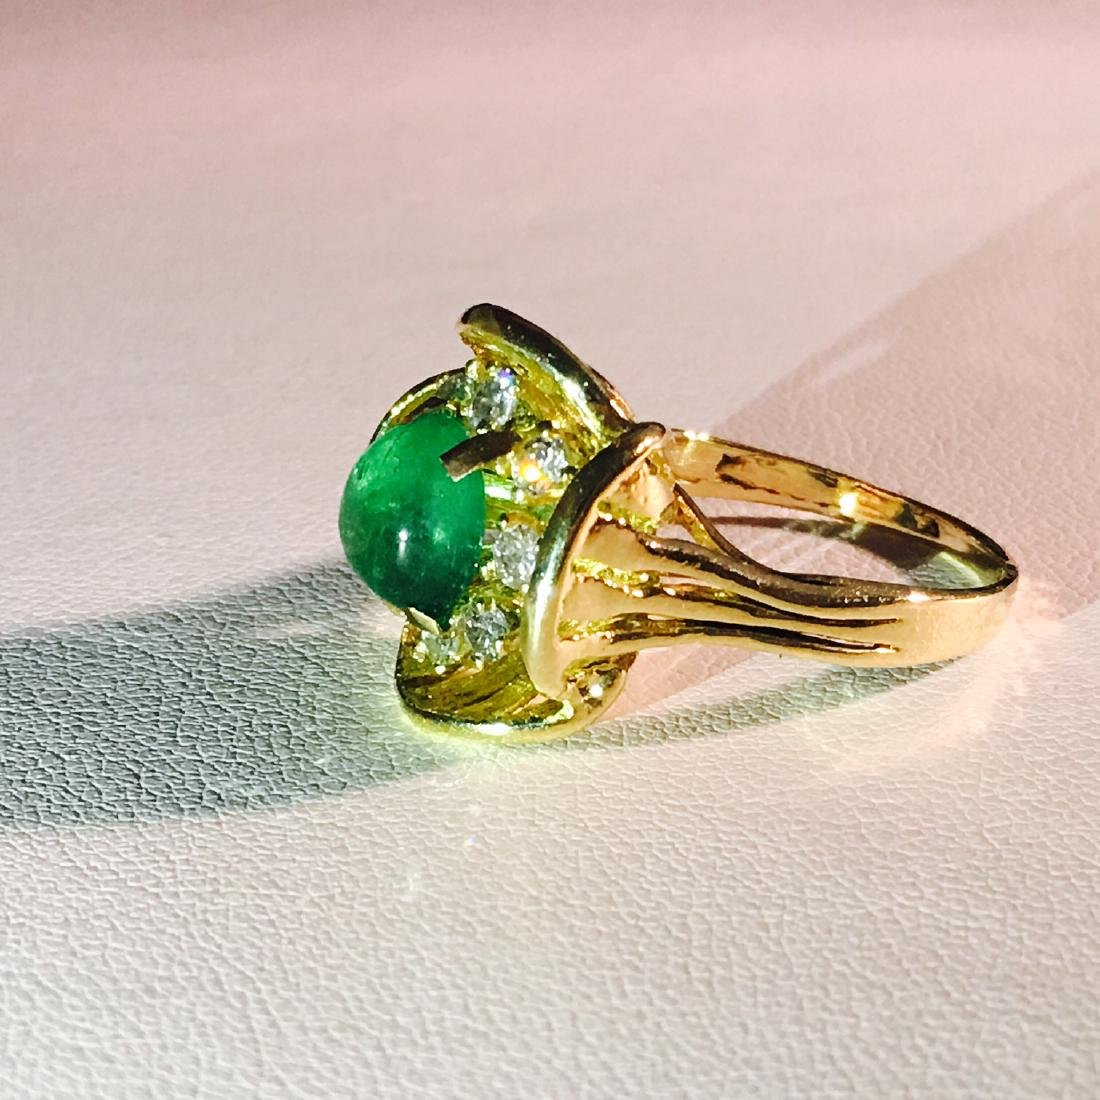 Vintage 18K Gold, 2.90 CT Diamond And Emerald Ring - 2